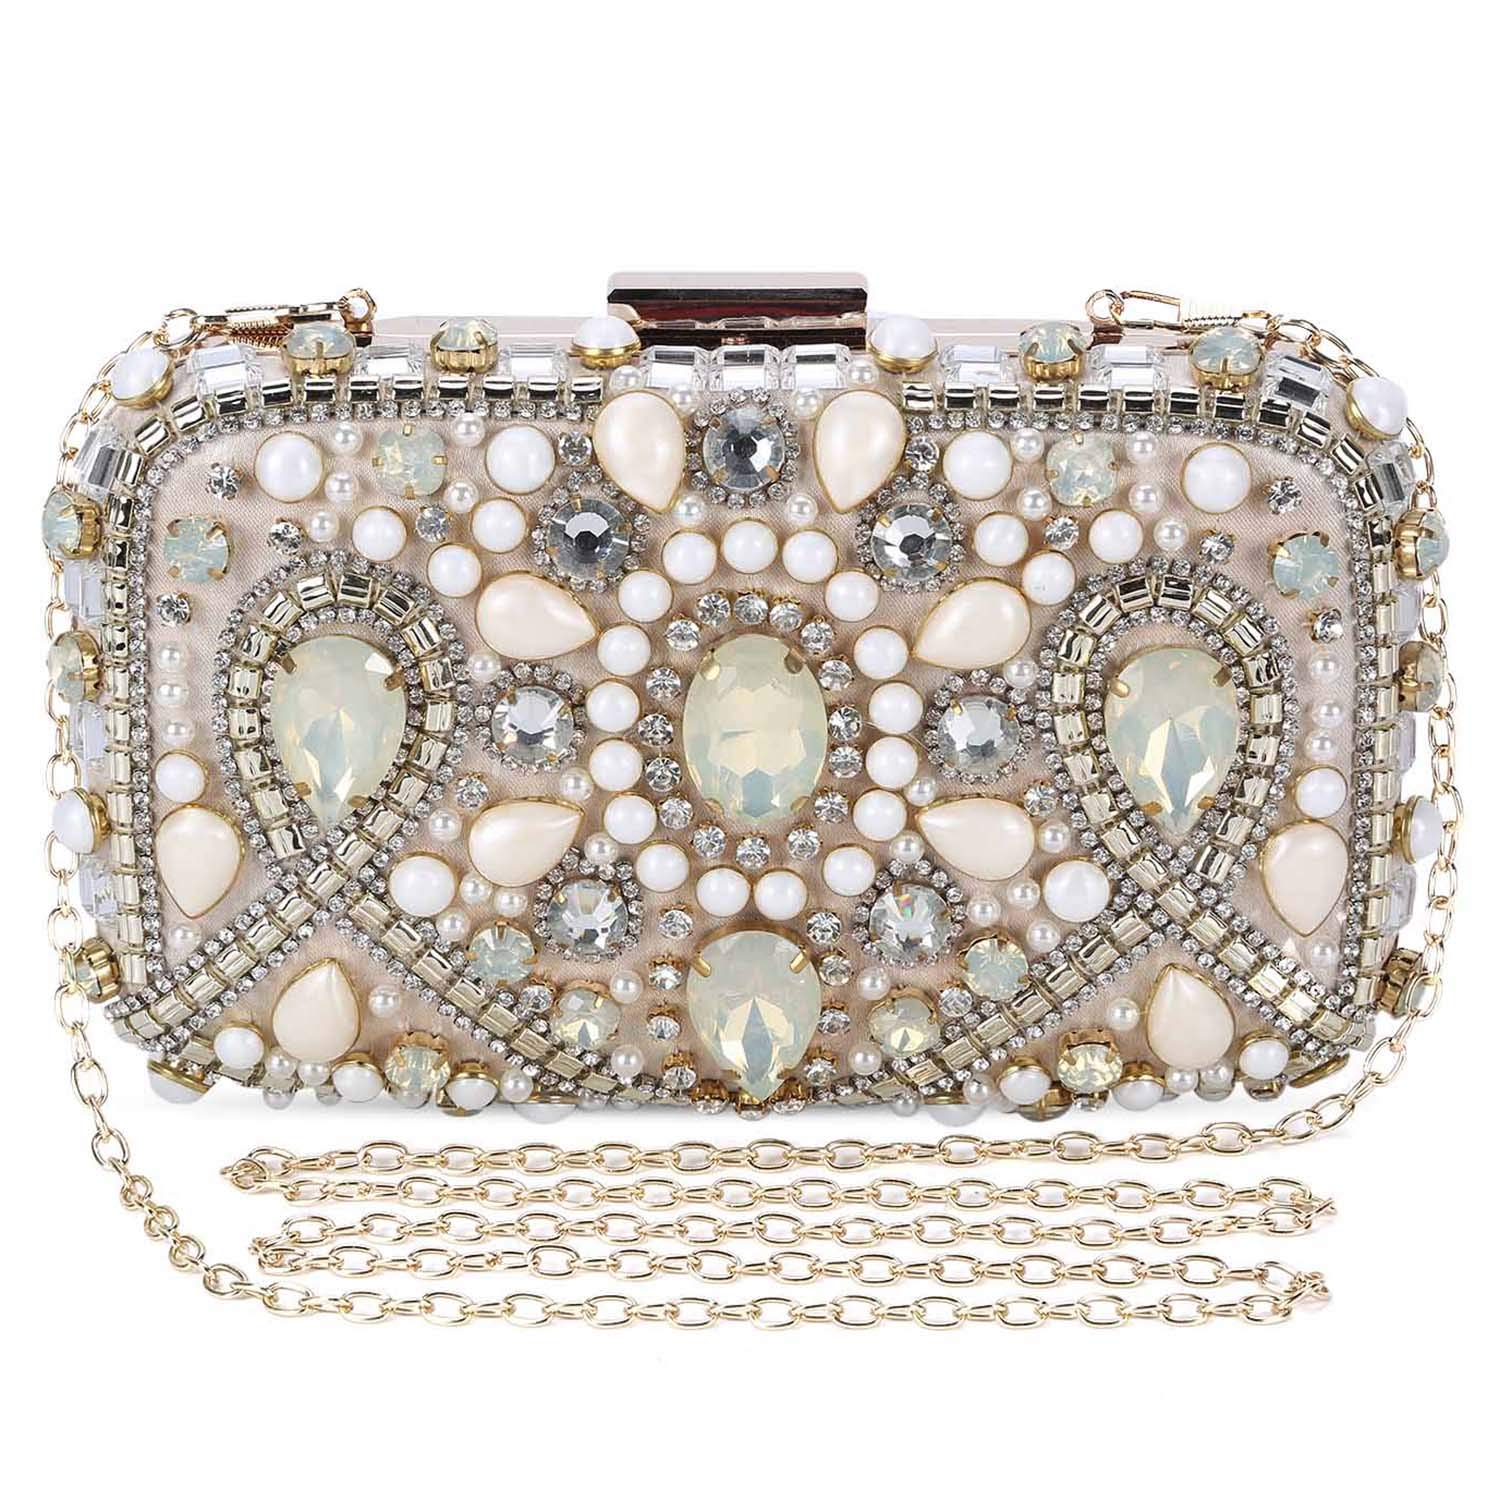 Clocolor Evening Bags and Clutches for Women Crystal Rhinestone for Wedding Party Beaded Clutch Purse Pearl Handbag(apricot)